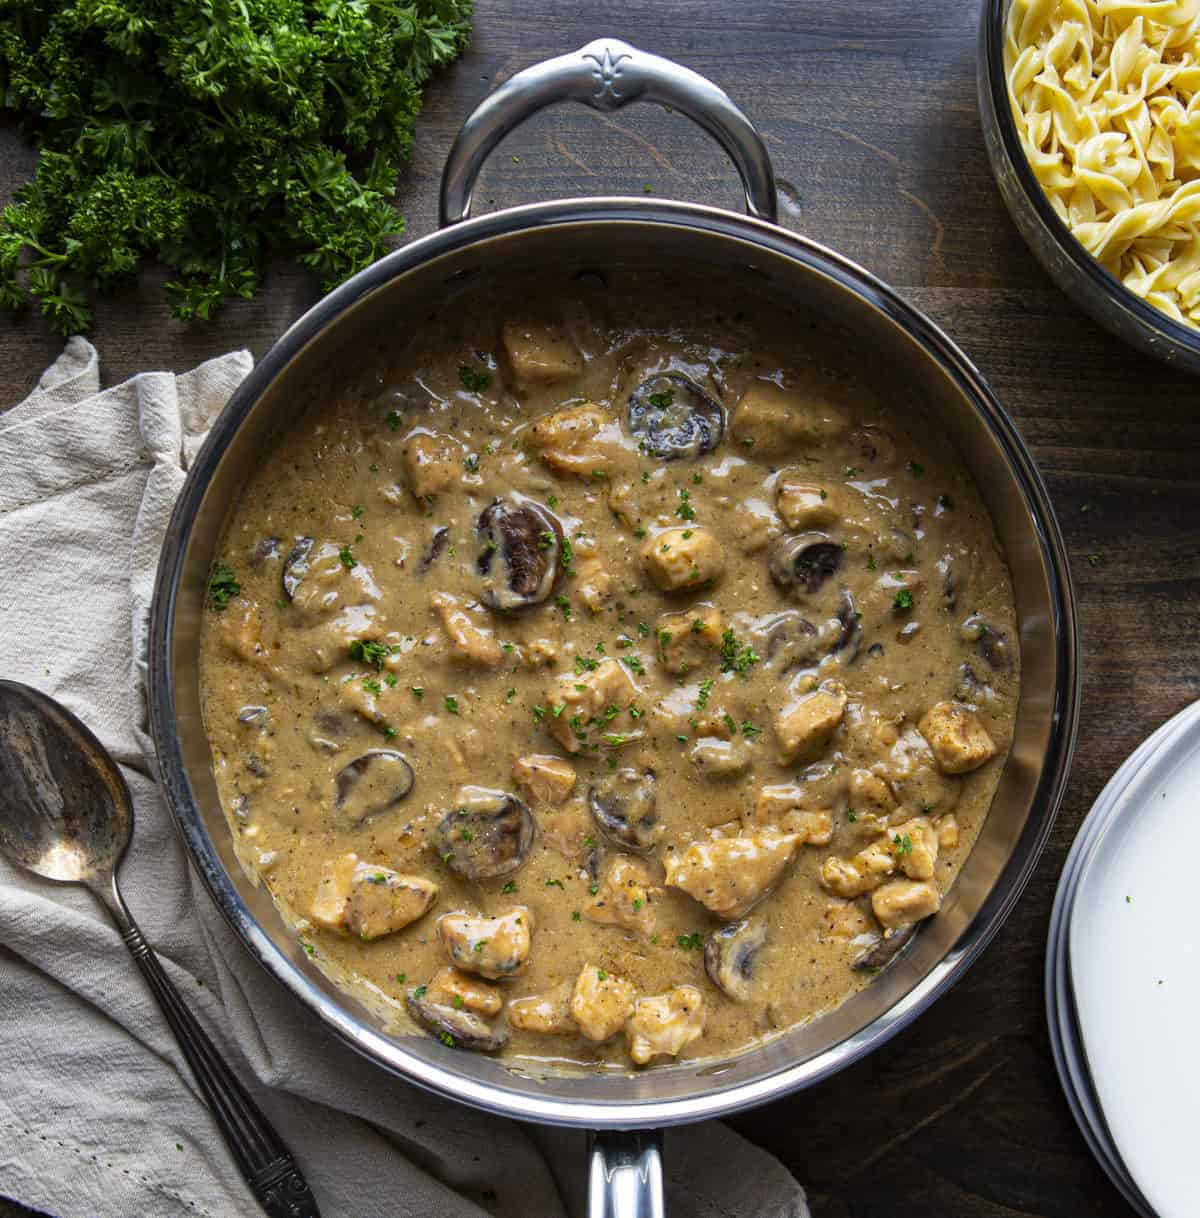 Overhead of skillet of Chicken Stroganoff Recipe with noodles, parsley, and plates by it